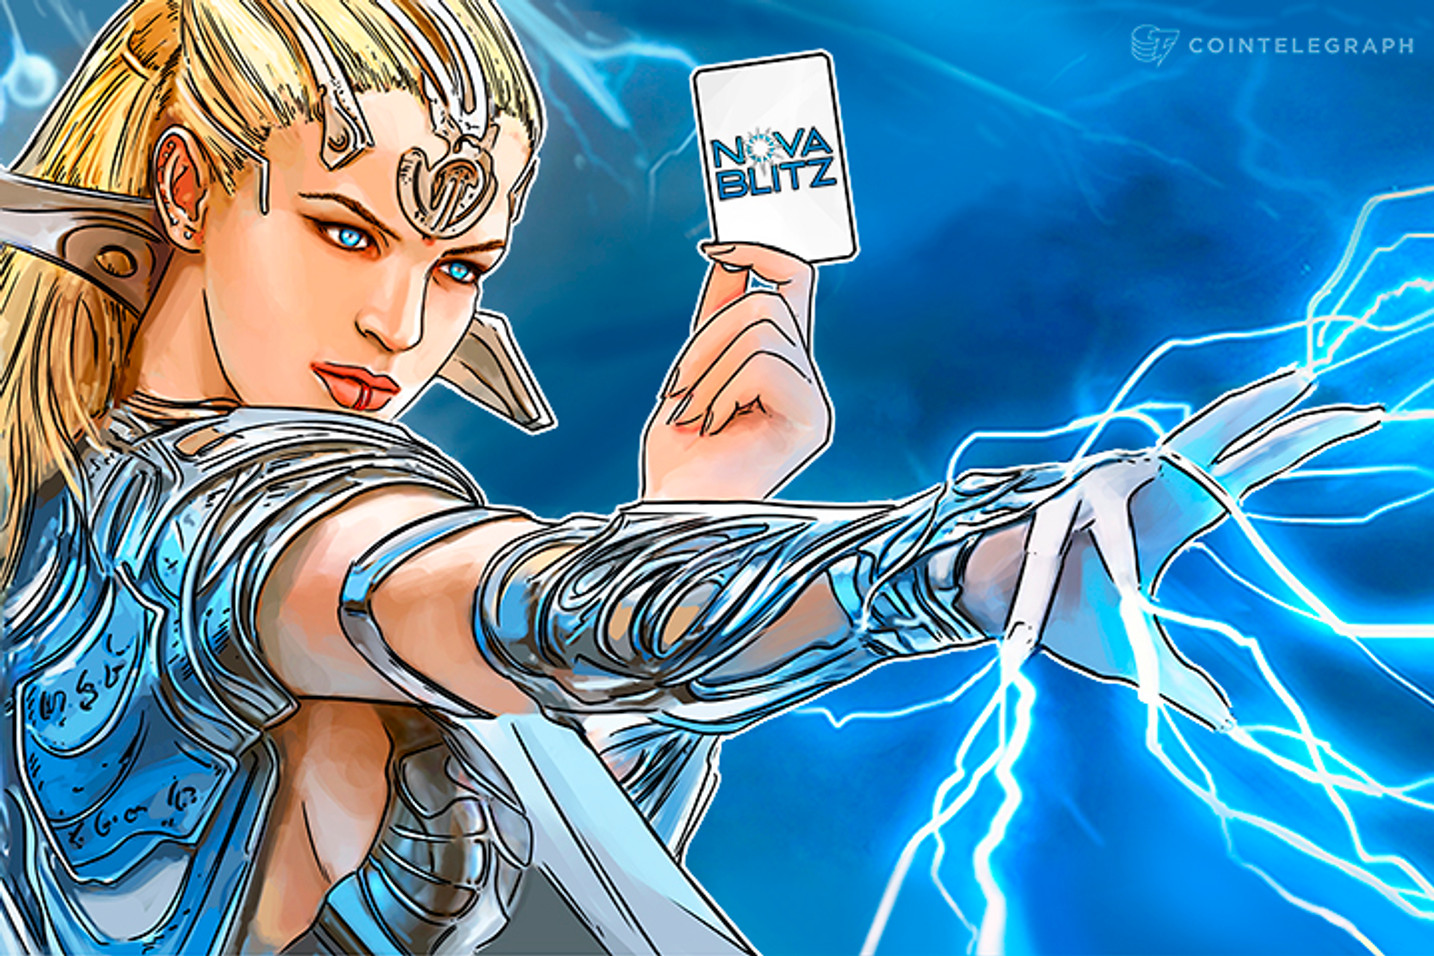 Blockchain-Based Platform Cuts out Middleman in Collectible Card Games